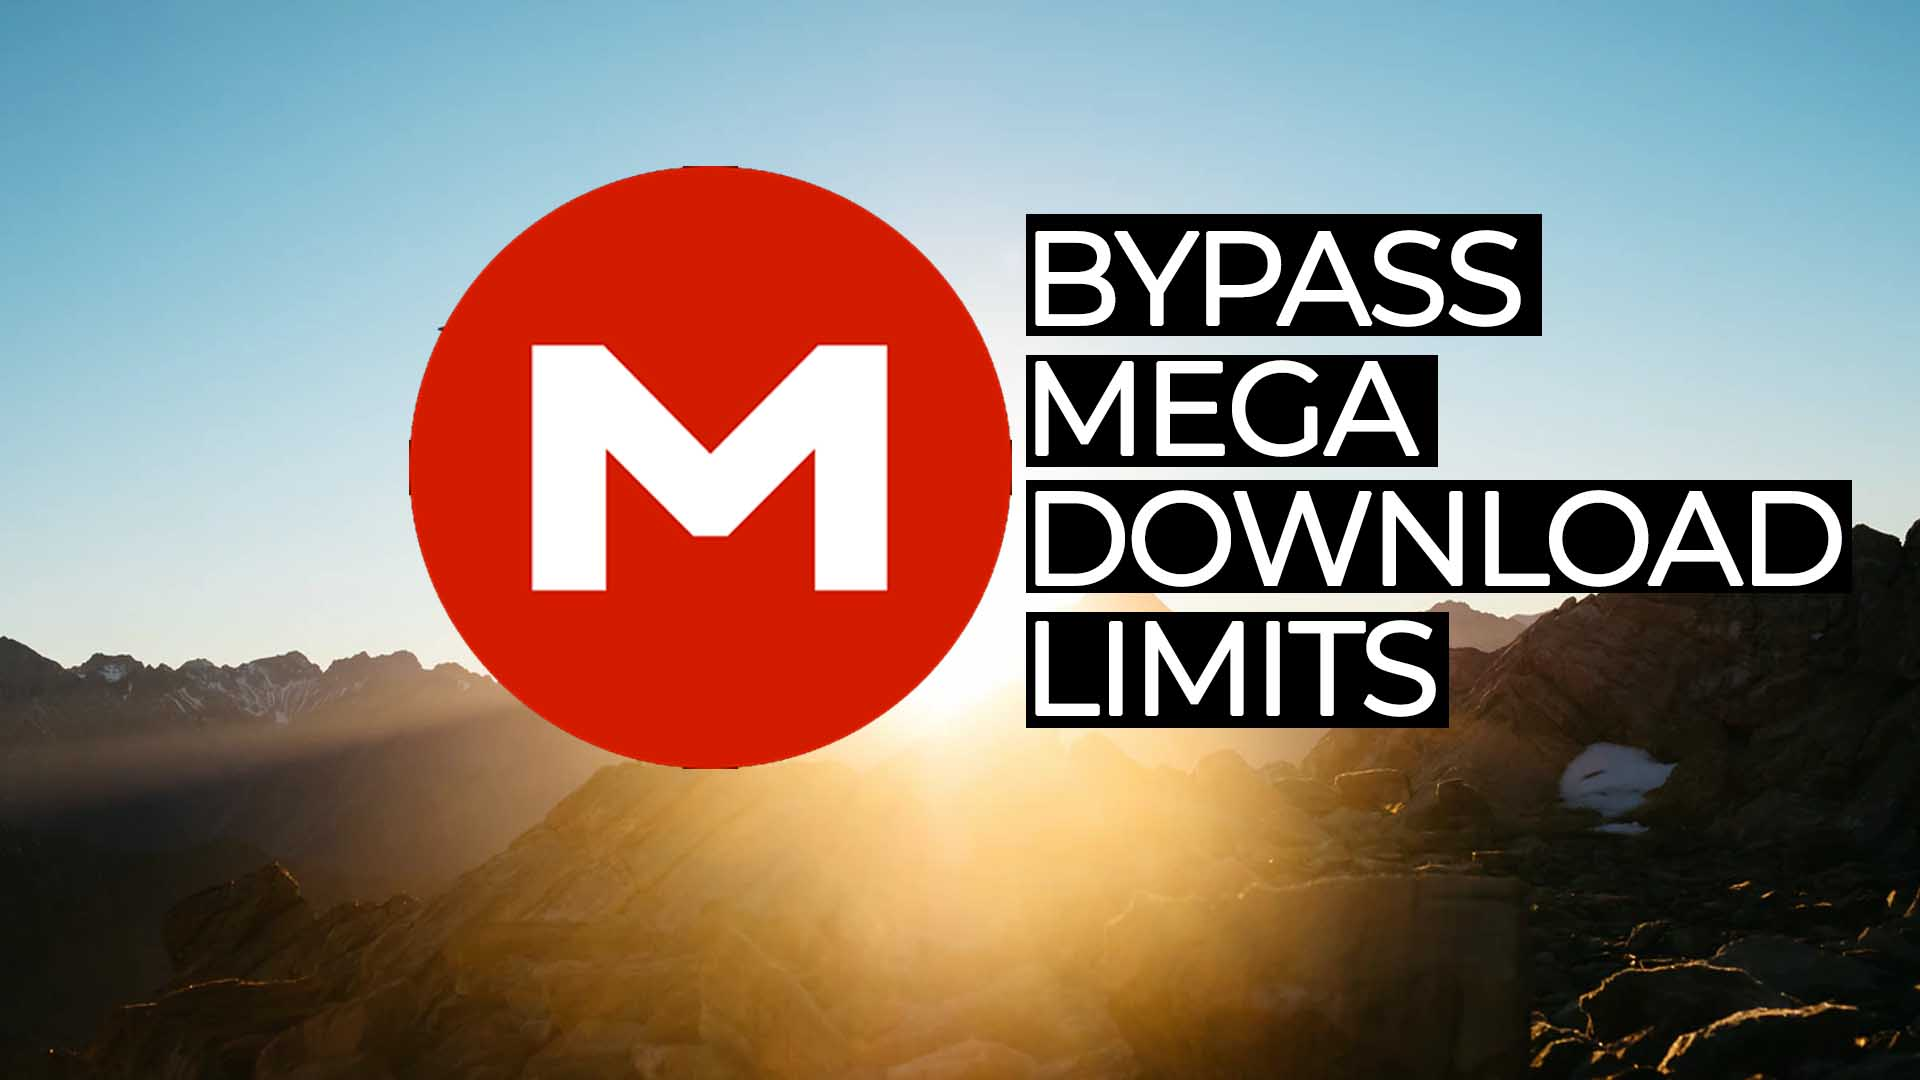 Best Way To Bypass Mega Download Limits (2021)